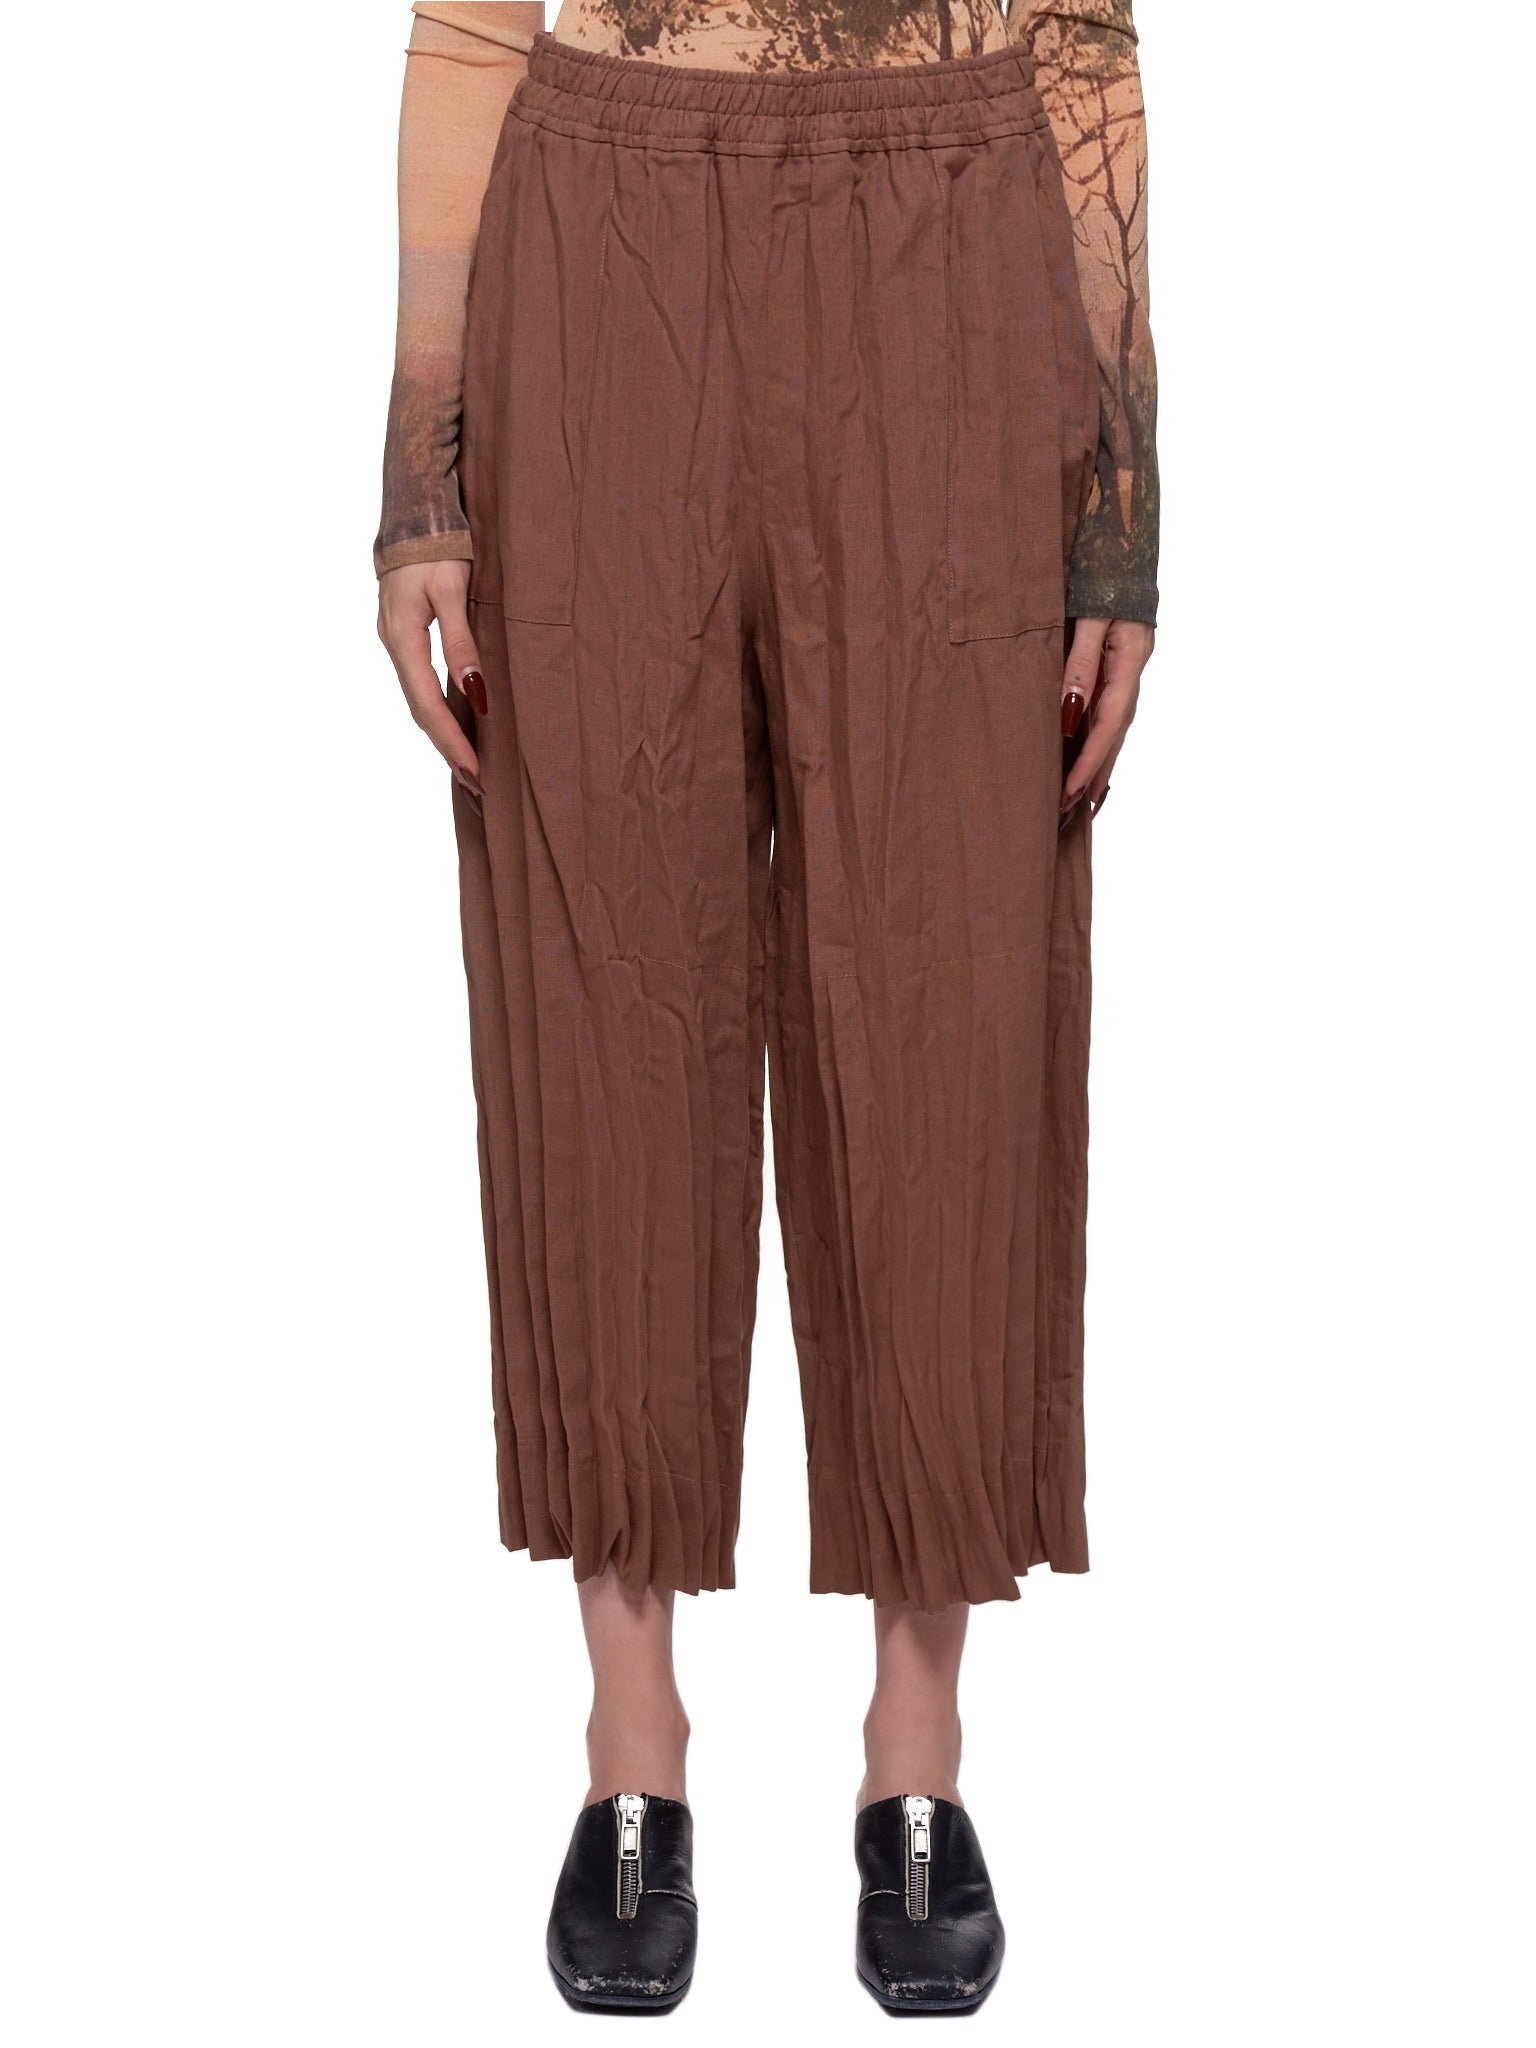 Cropped Wrinkled Trousers (TROU000318-MINK-BROWN)